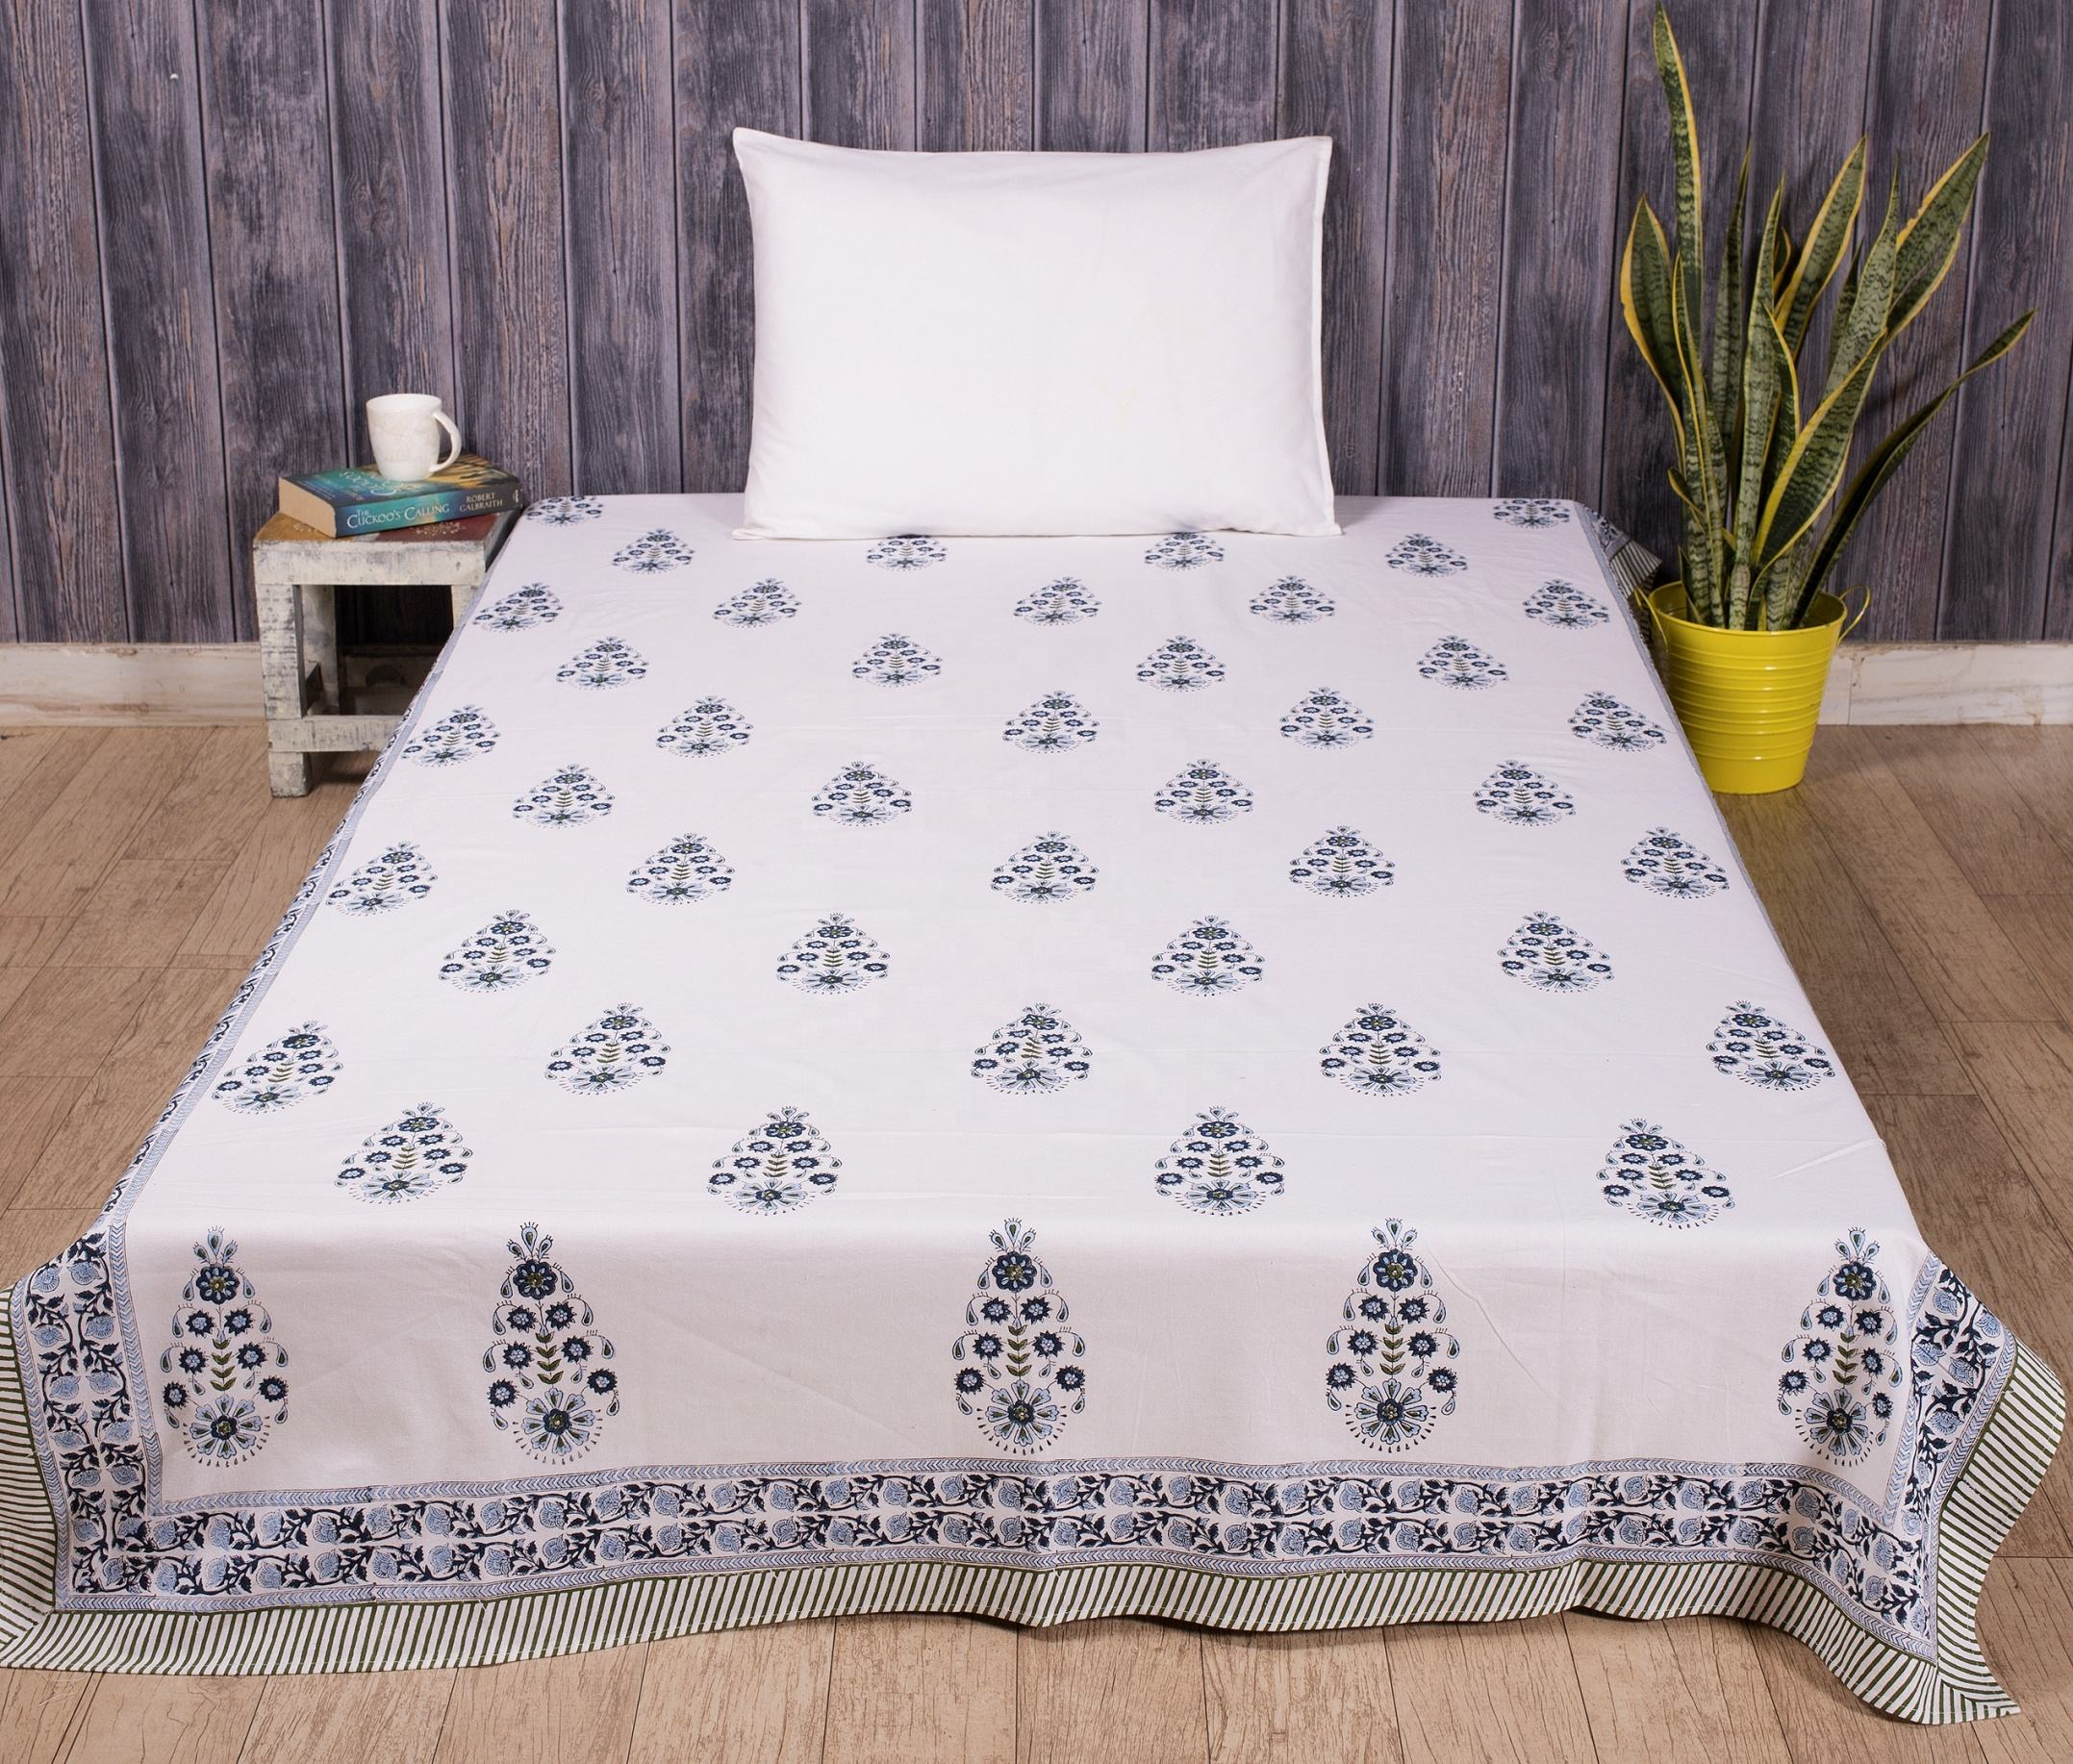 Cotton bed sheet famous hand block print designs Printed bedding sheet in twin size